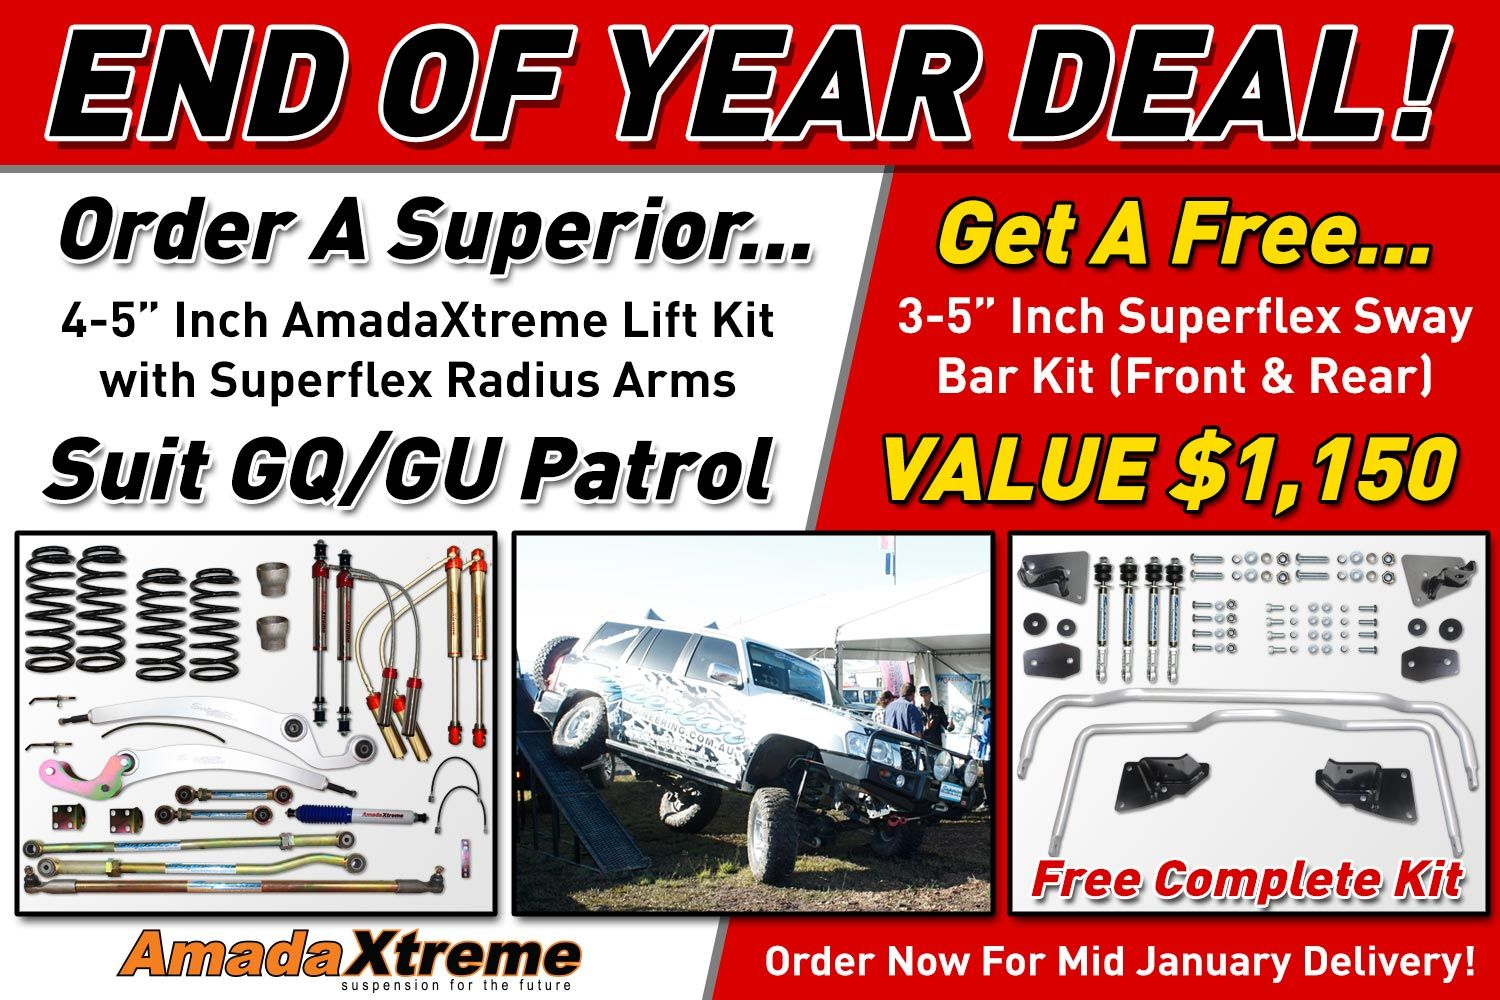 """End of Year Deal for GQ & GU Nissan Patrols!  Order a 4-5"""" Inch AmadaXtreme Lift Kit with Superflex Radius Arms... and you get a FREE 3-5"""" Inch Superflex Sway Bar Kit (Front & Rear) VALUED at $1,150.00.  Order Now For Mid January Delivery! Limited Time Offer.  GQ Patrol Lift Kit: http://goo.gl/11Vd8T GU Patrol Lift Kit: http://goo.gl/En4GkW  GQ Patrol Sway Bar Kit: http://goo.gl/WWHM9O GU Patrol Sway Bar Kit: http://goo.gl/F7yQw2"""